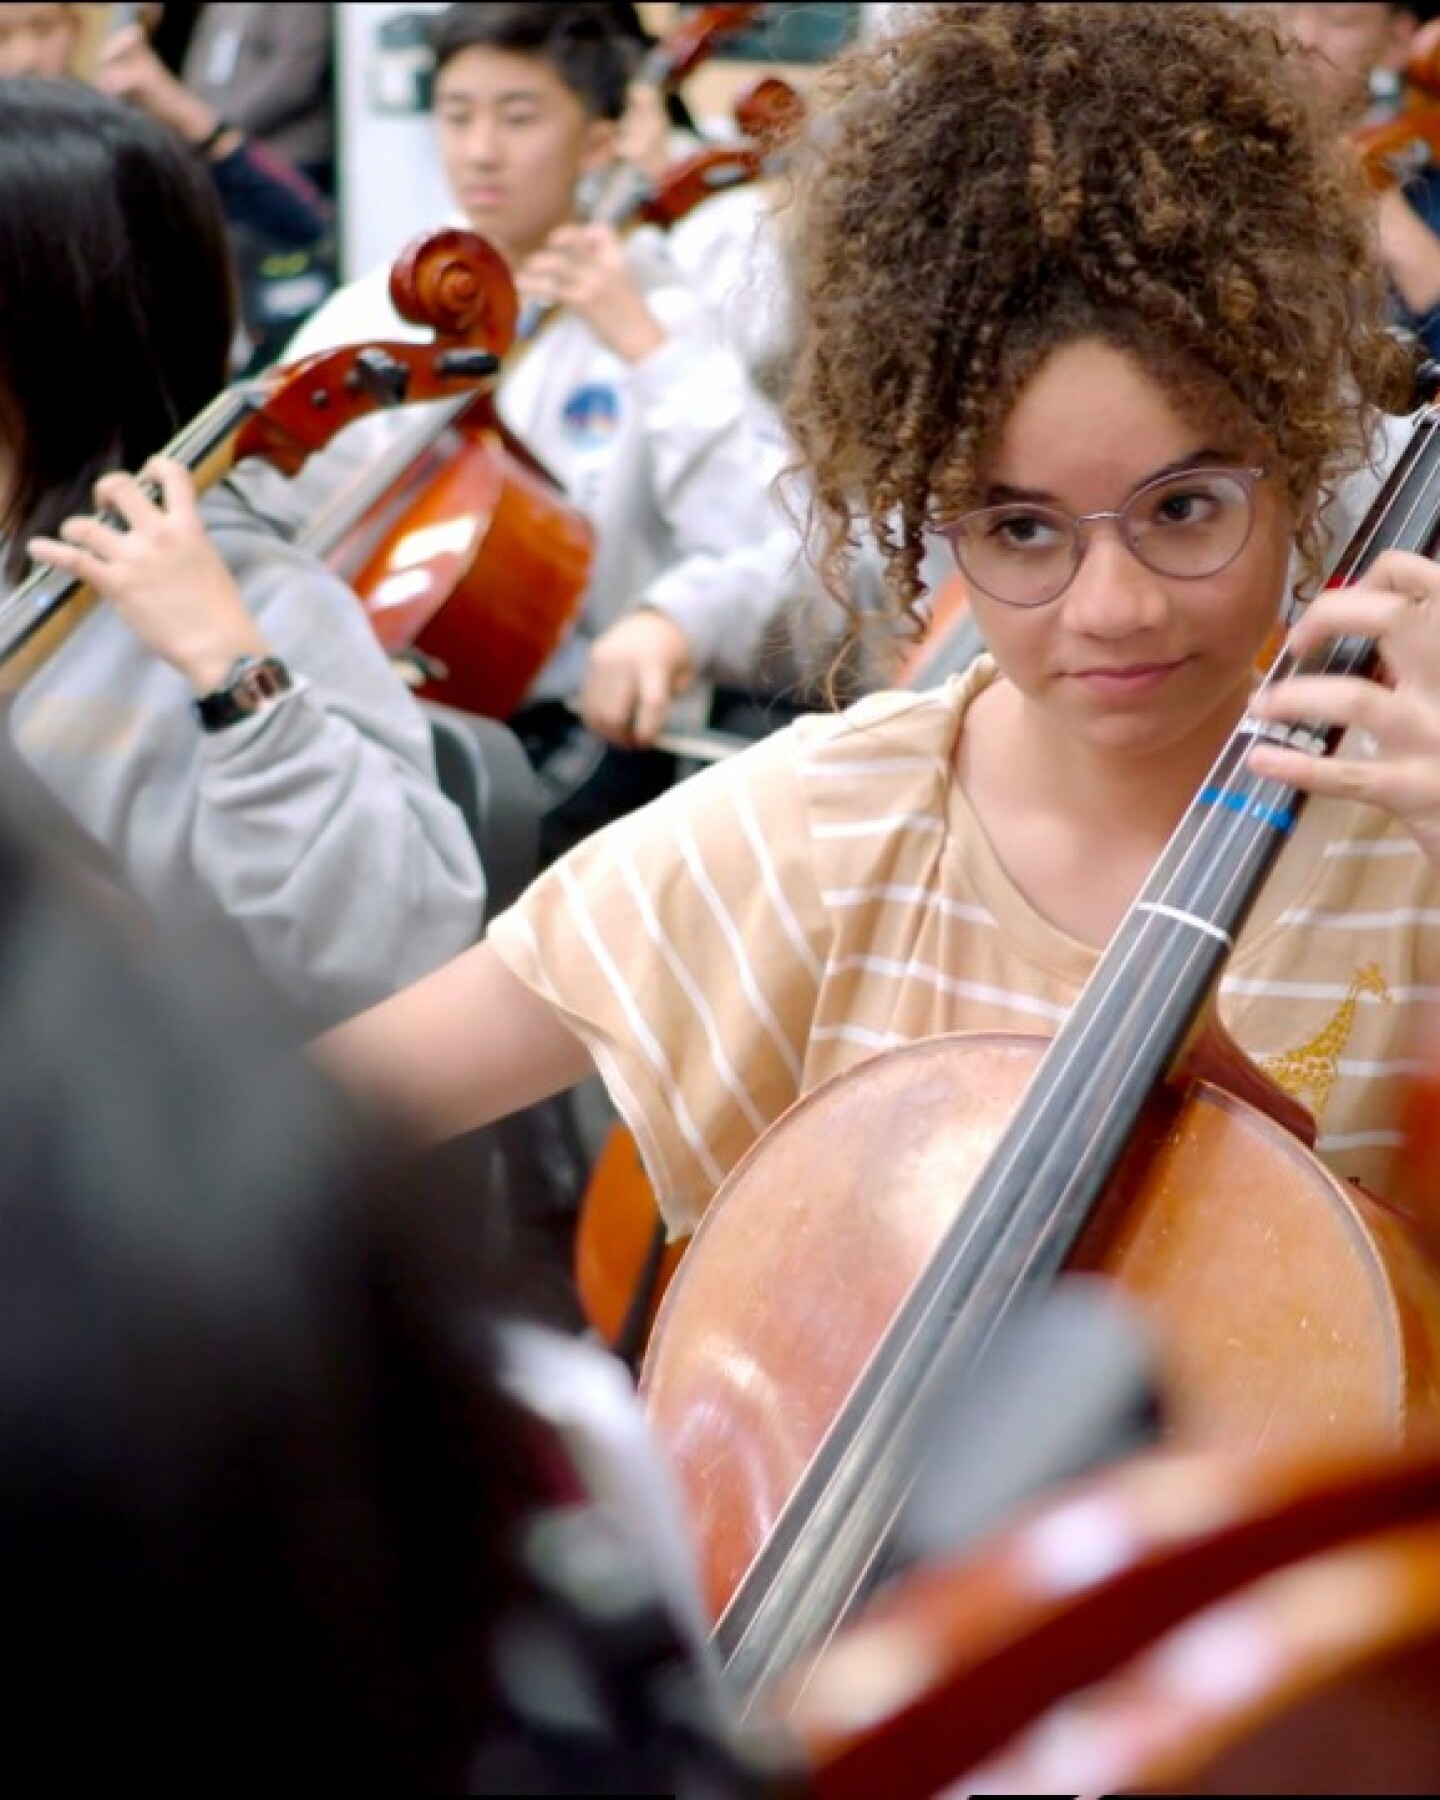 An 8th grade student plays the cello in the Sinfonia orchestra, an ensemble for 8th grade musicians.